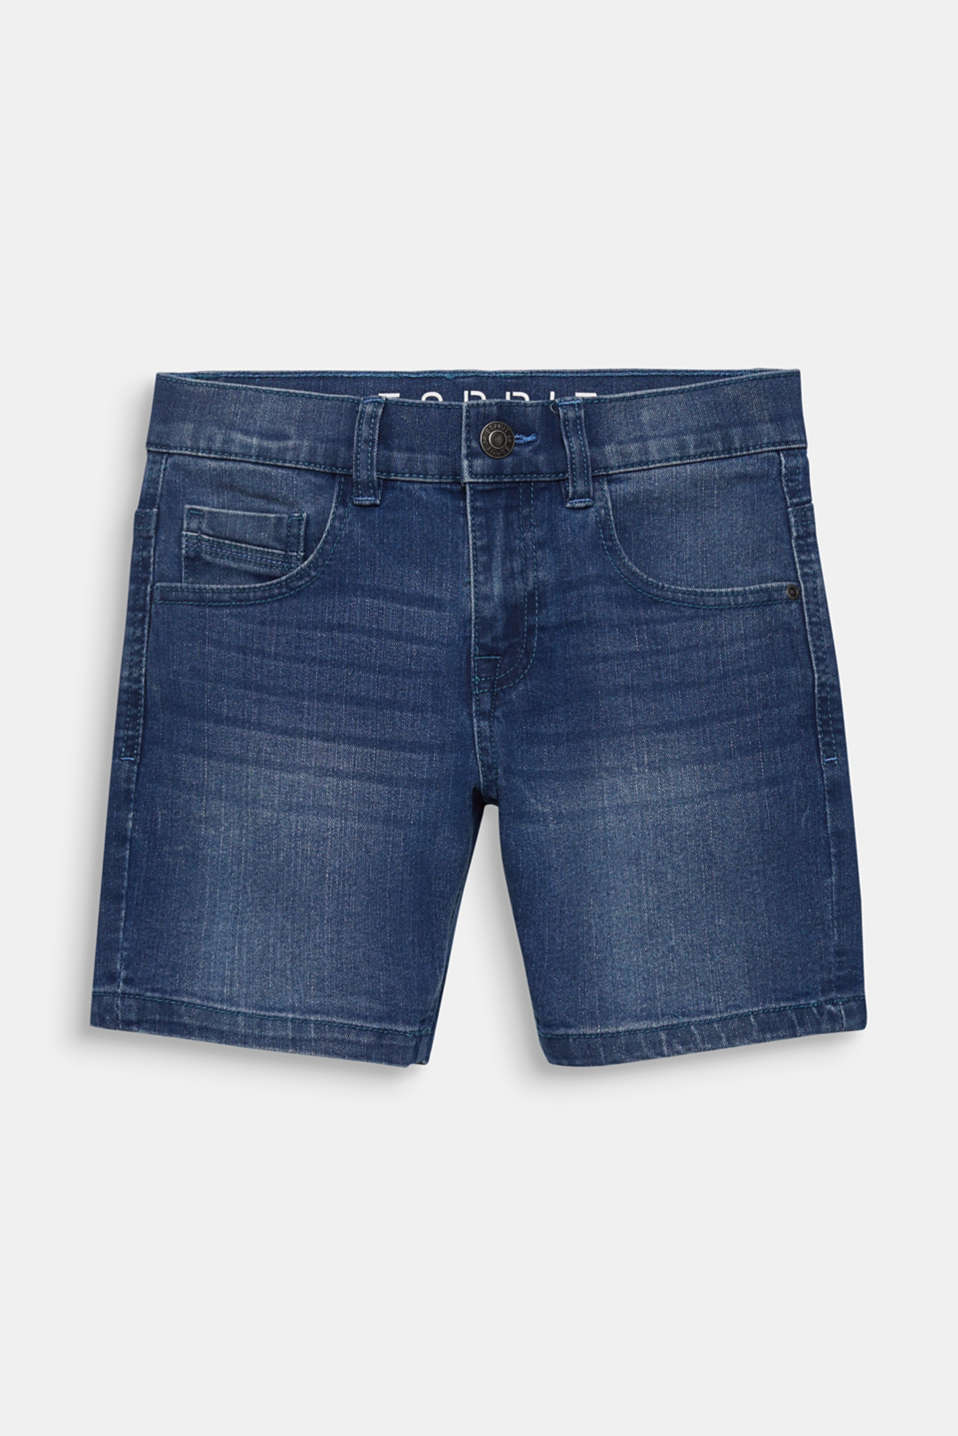 Comfy stretch denim shorts, adjustable waistband, LCLIGHT INDIGO D, detail image number 0